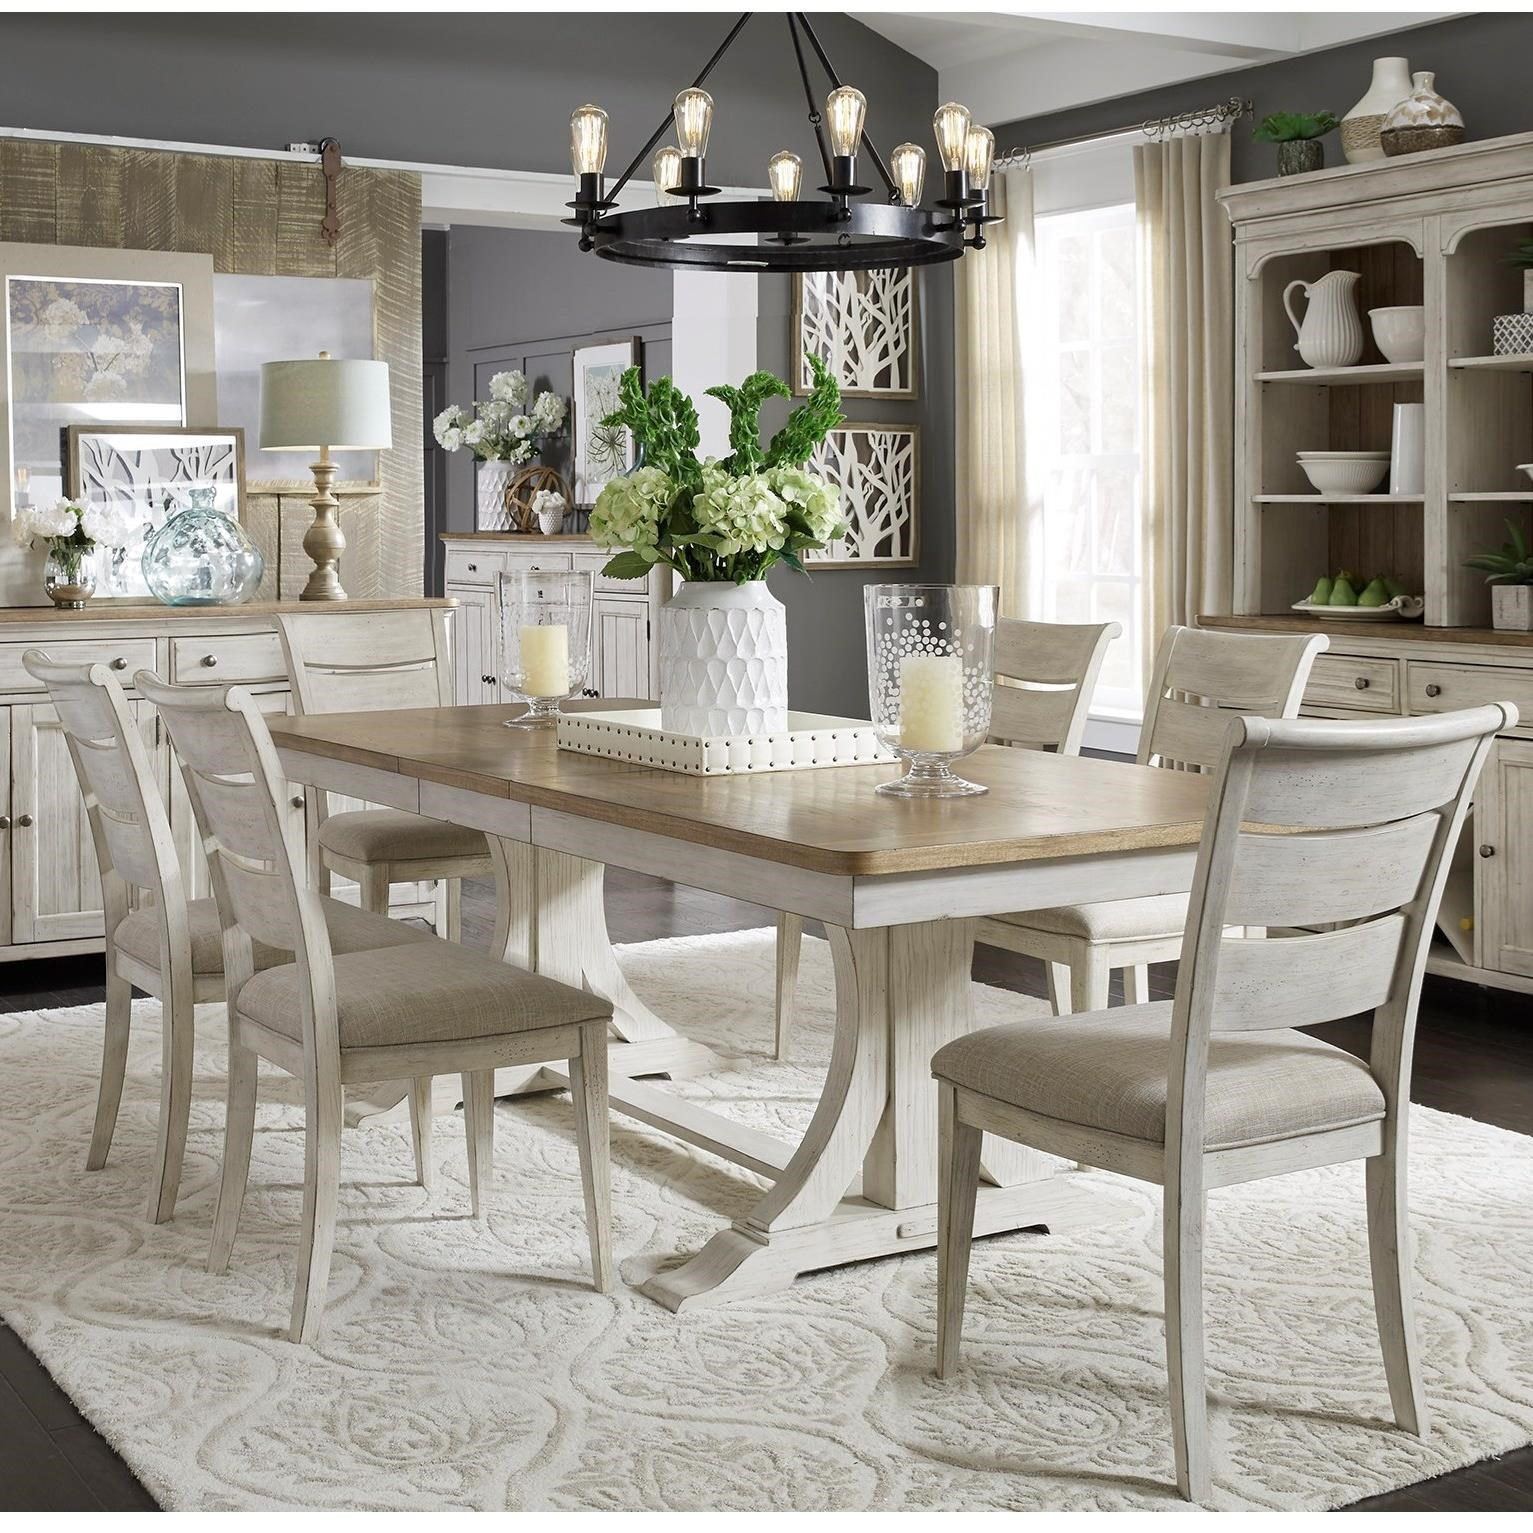 Farmhouse Reimagined 7-Piece Table and Chair Set by Liberty Furniture at Dinette Depot